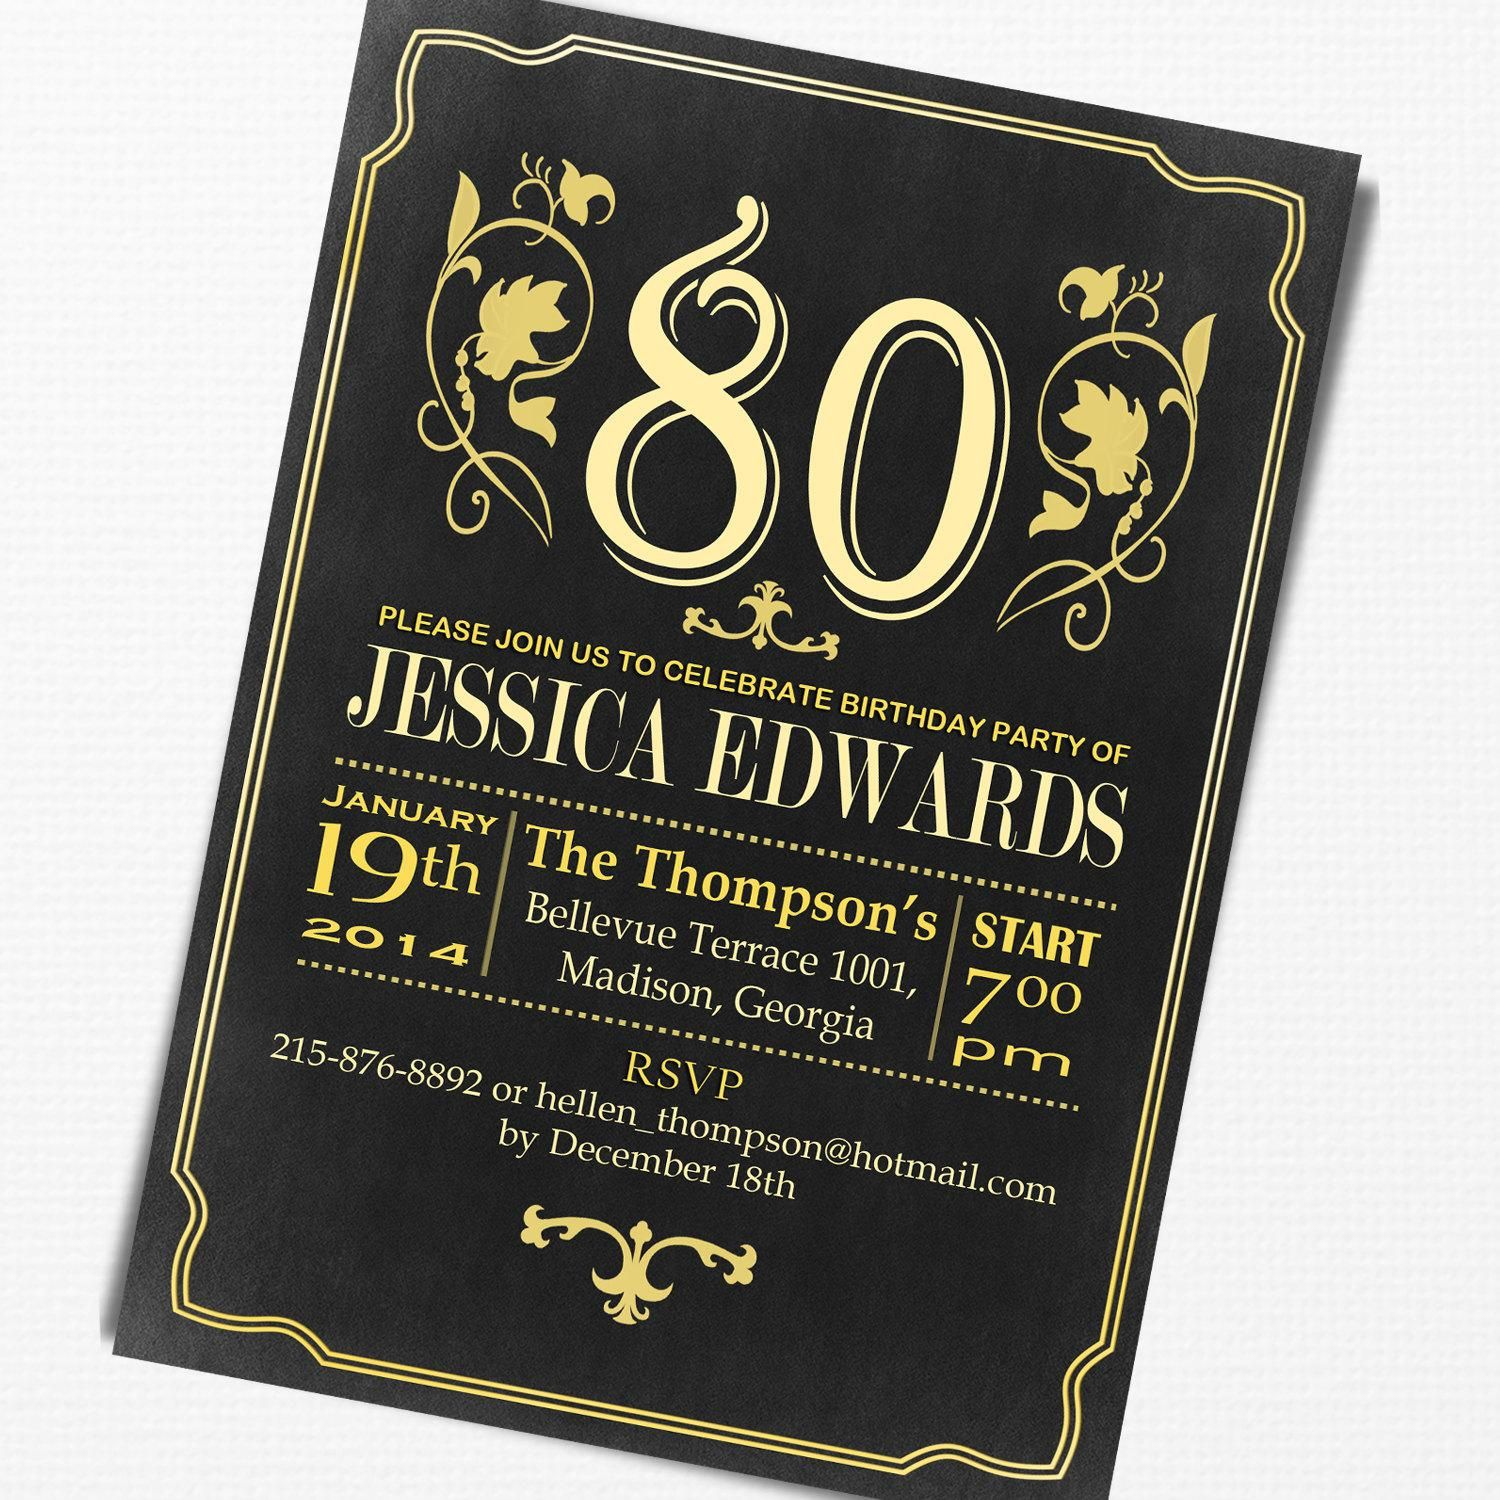 80th birthday invitation free sample cards for elegant party 80th birthday invitation free sample cards for elegant party stopboris Choice Image